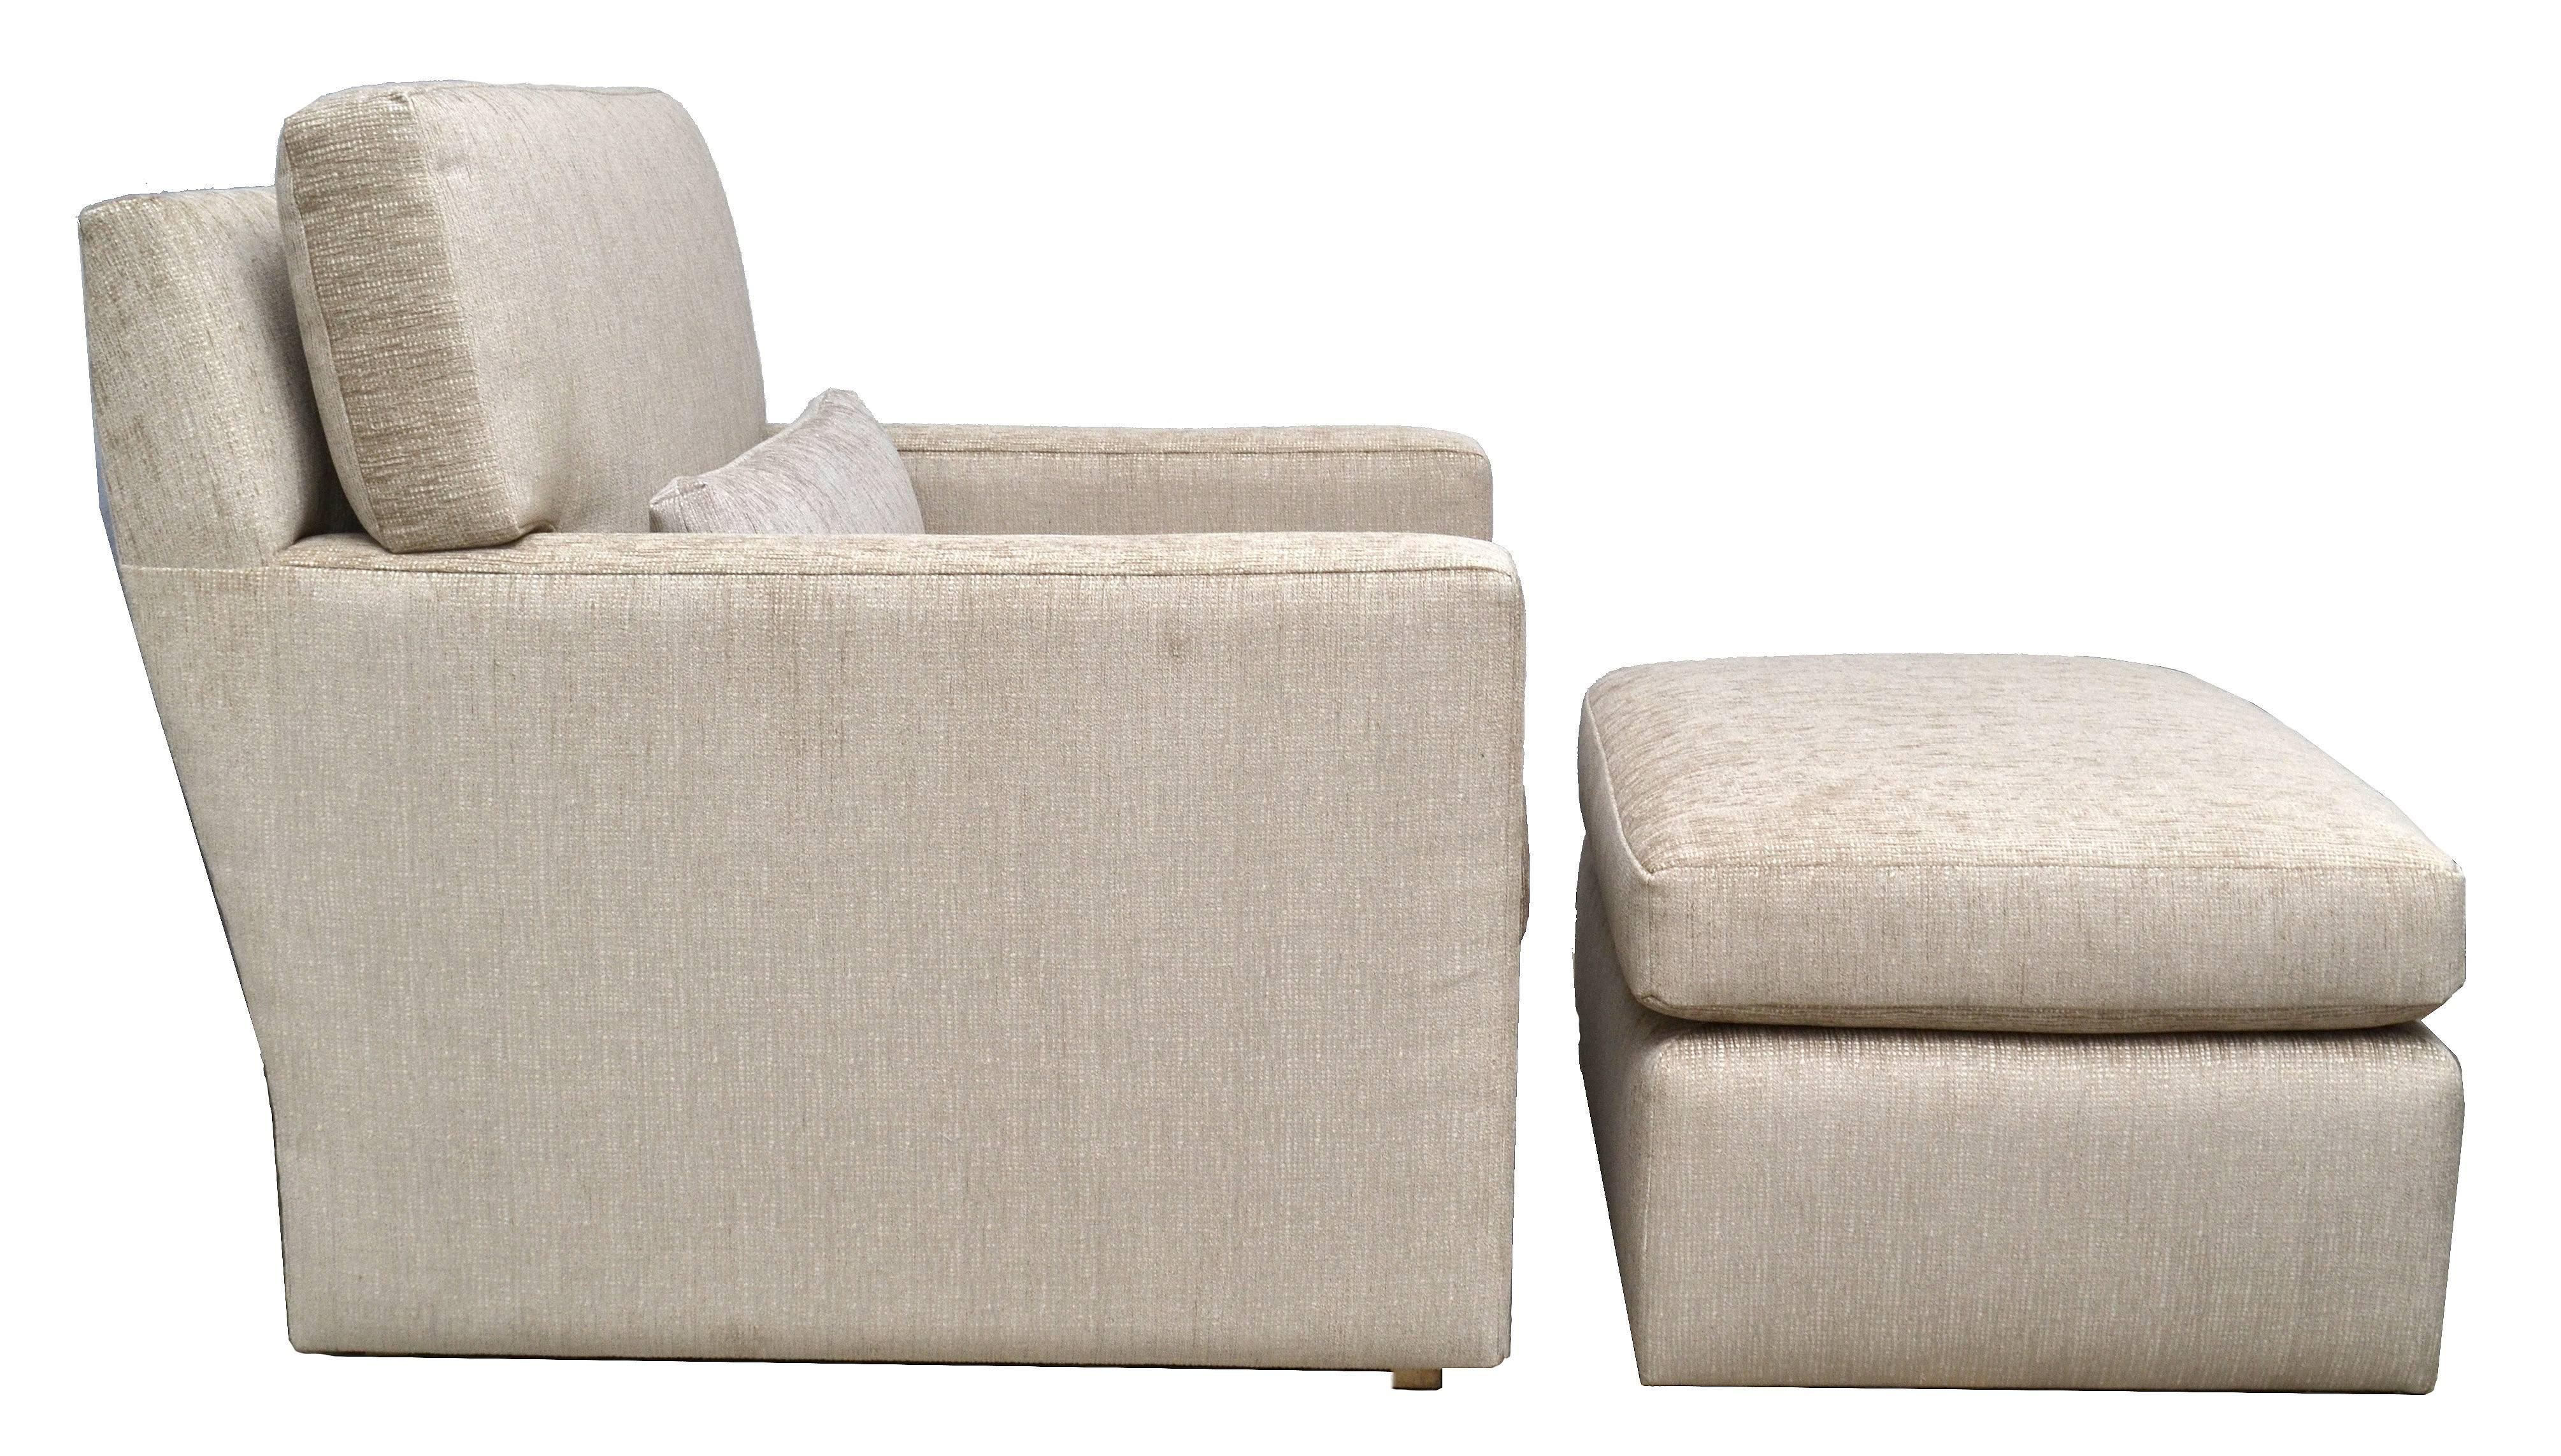 contemporary lounge chairs bath chair lift for elderly with ottoman sale at 1stdibs modern